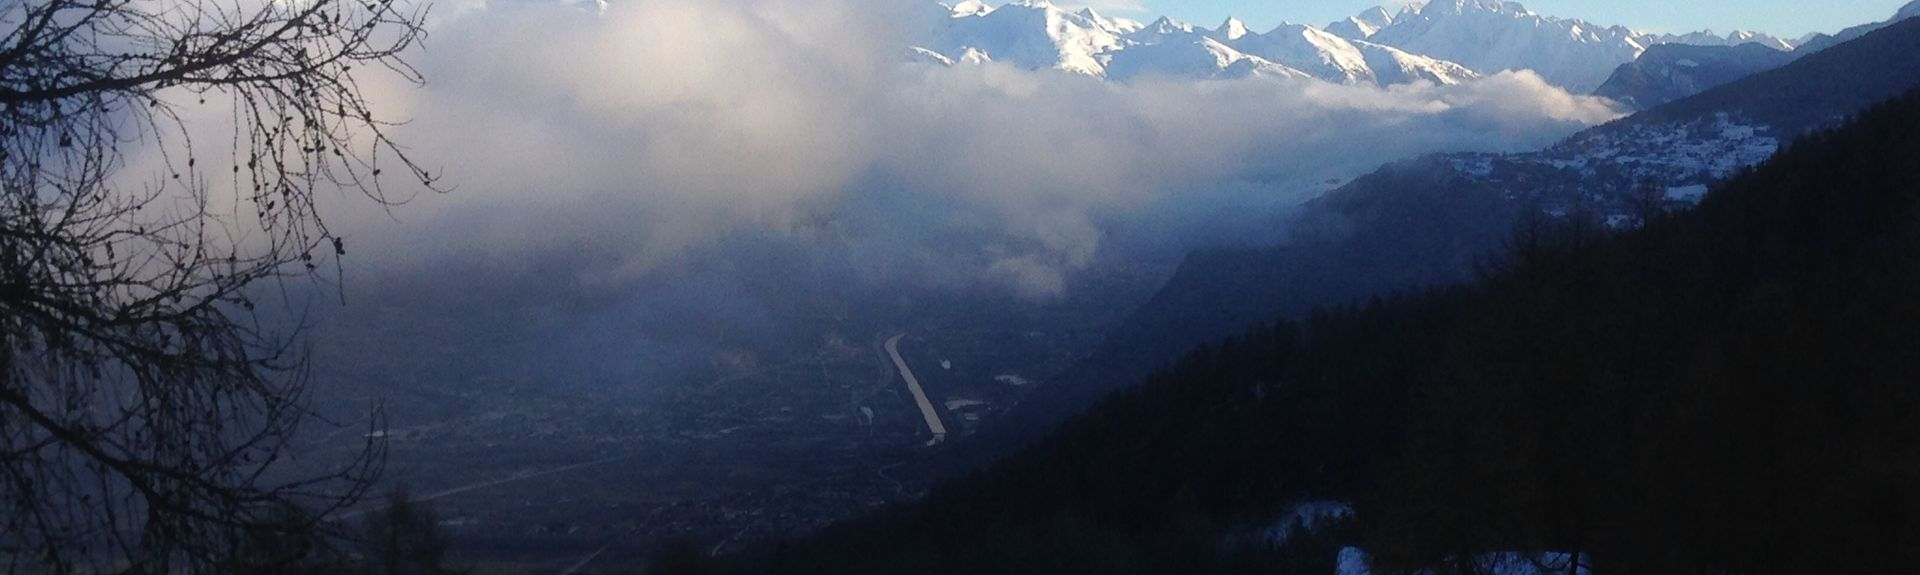 Fully, Valais, Suisse